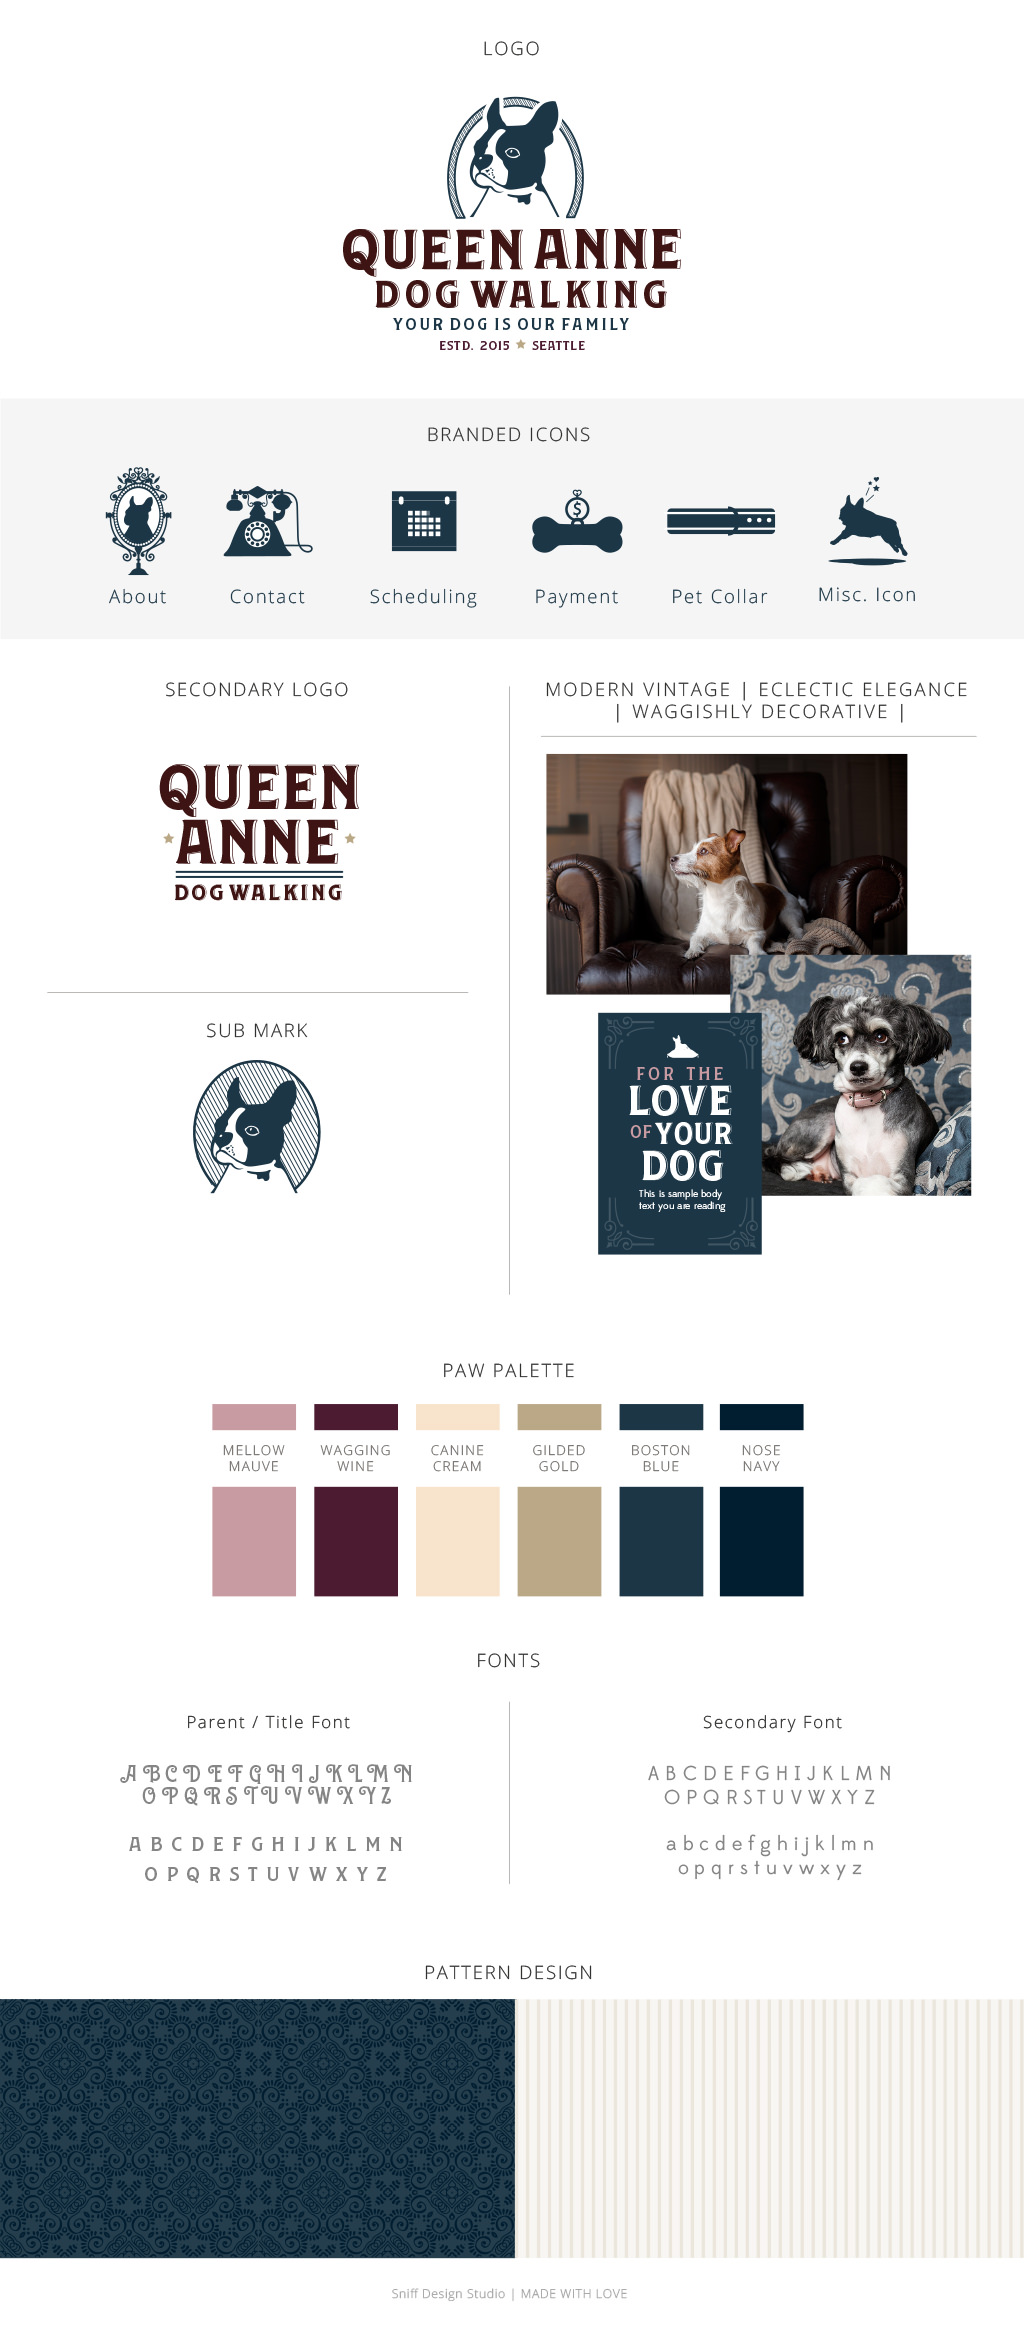 Queen Anne Dog Walking Pet Branding Design by Sniff Design Studio